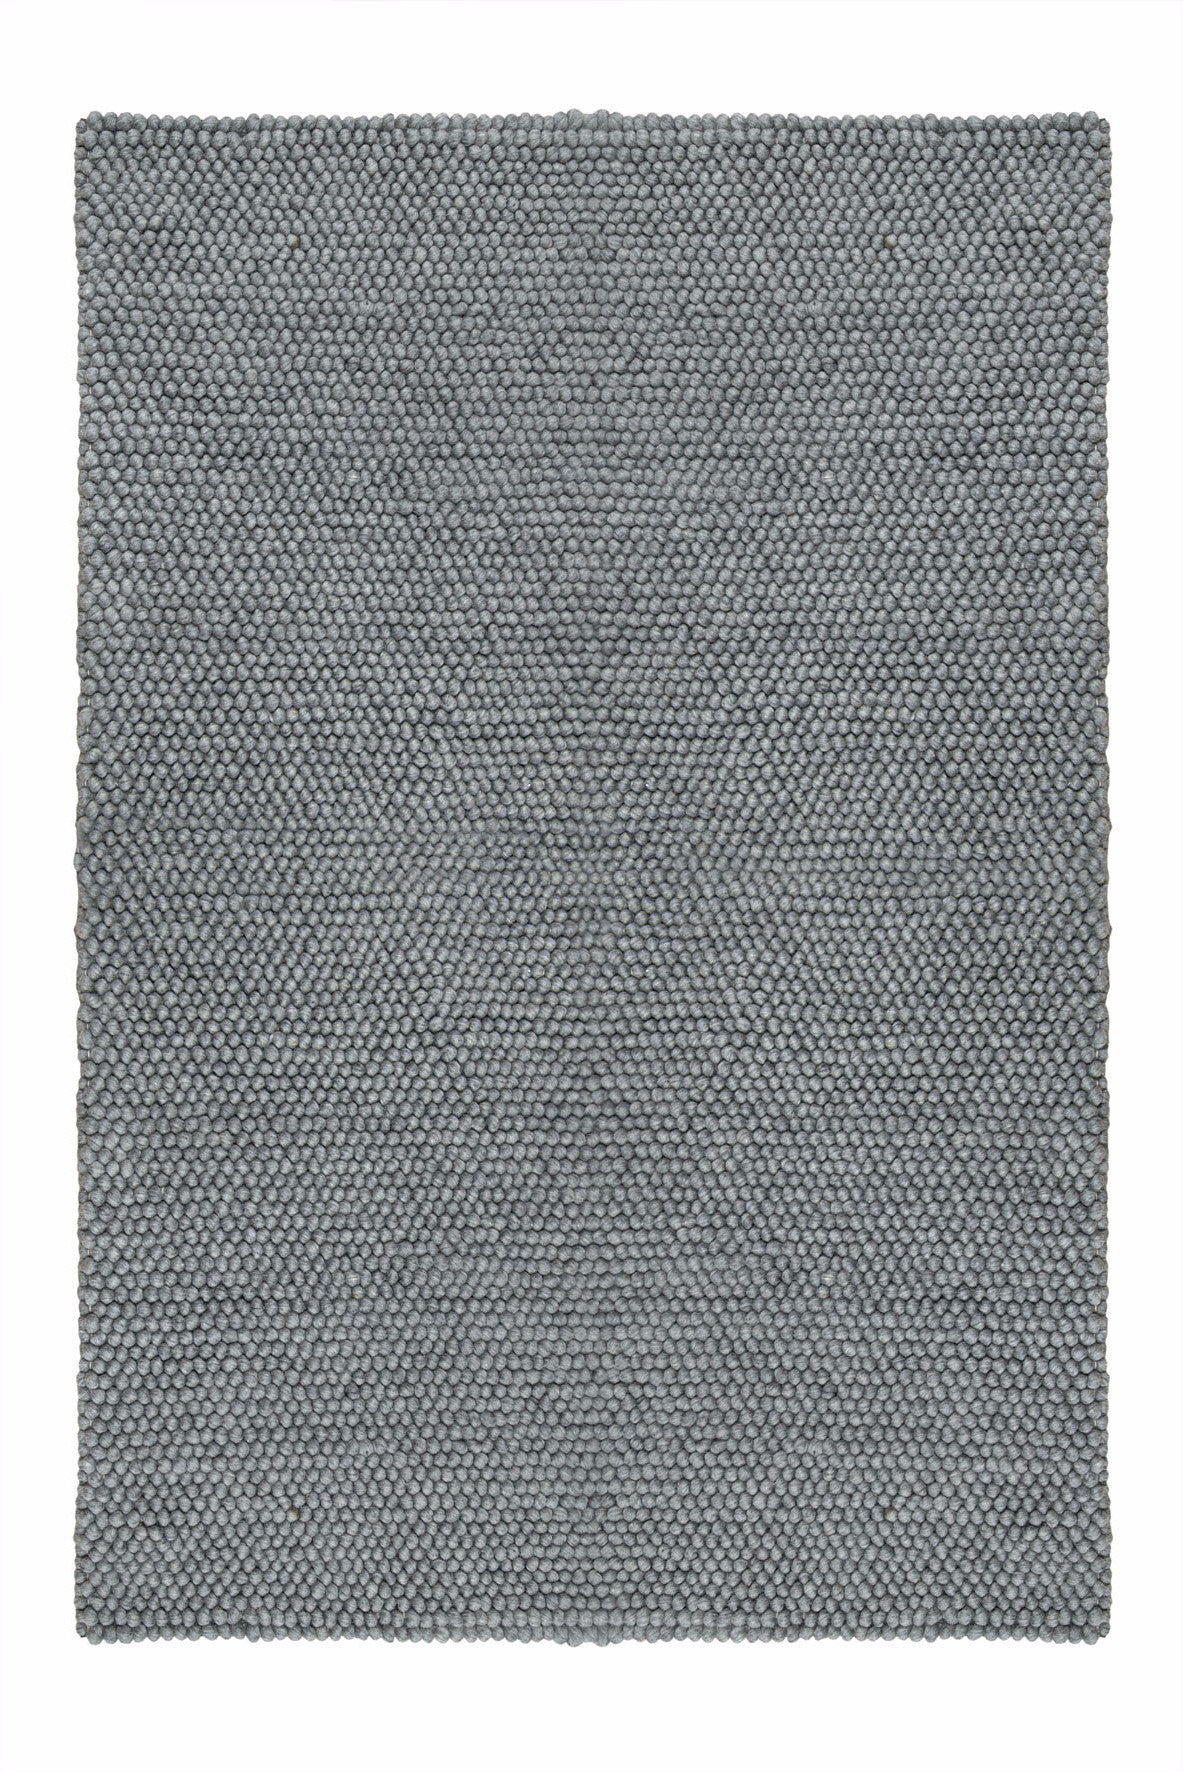 Eternity Wool Rug , Grey - greendecore.co.uk - 5